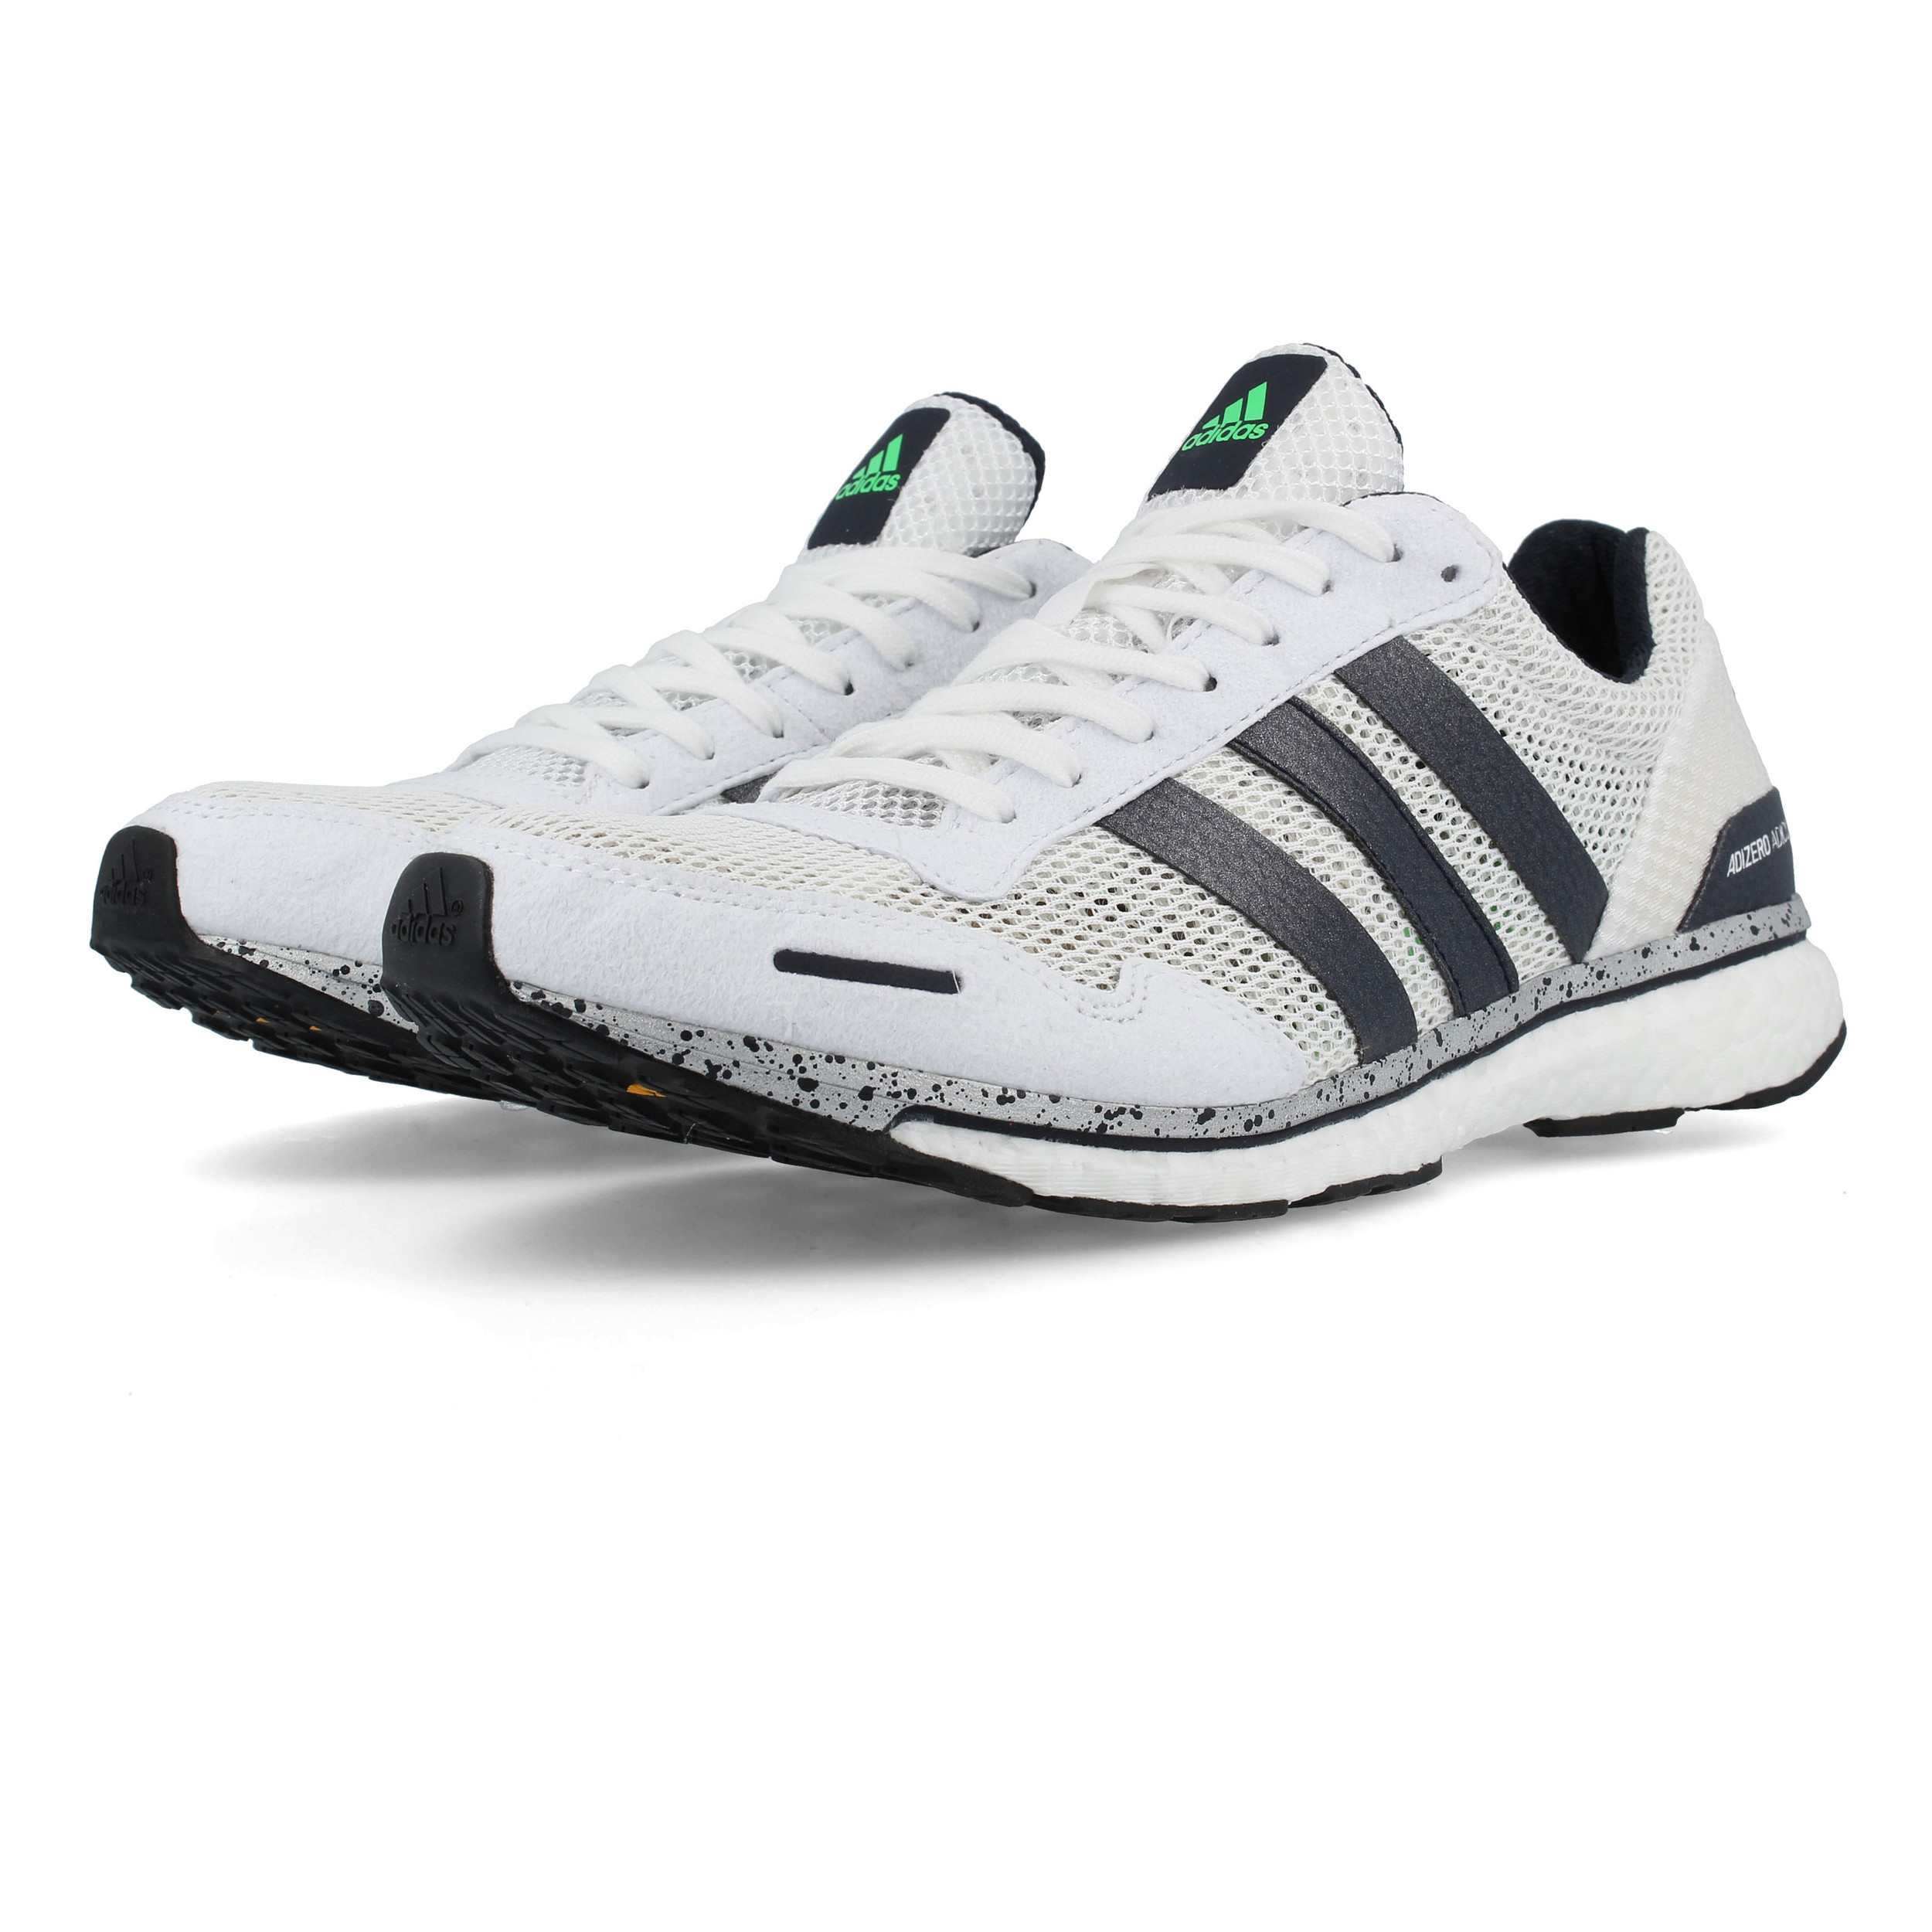 cf037c89e00d5 Details about adidas Mens Adizero Adios 3 Running Shoes Trainers Sneakers  White Sports